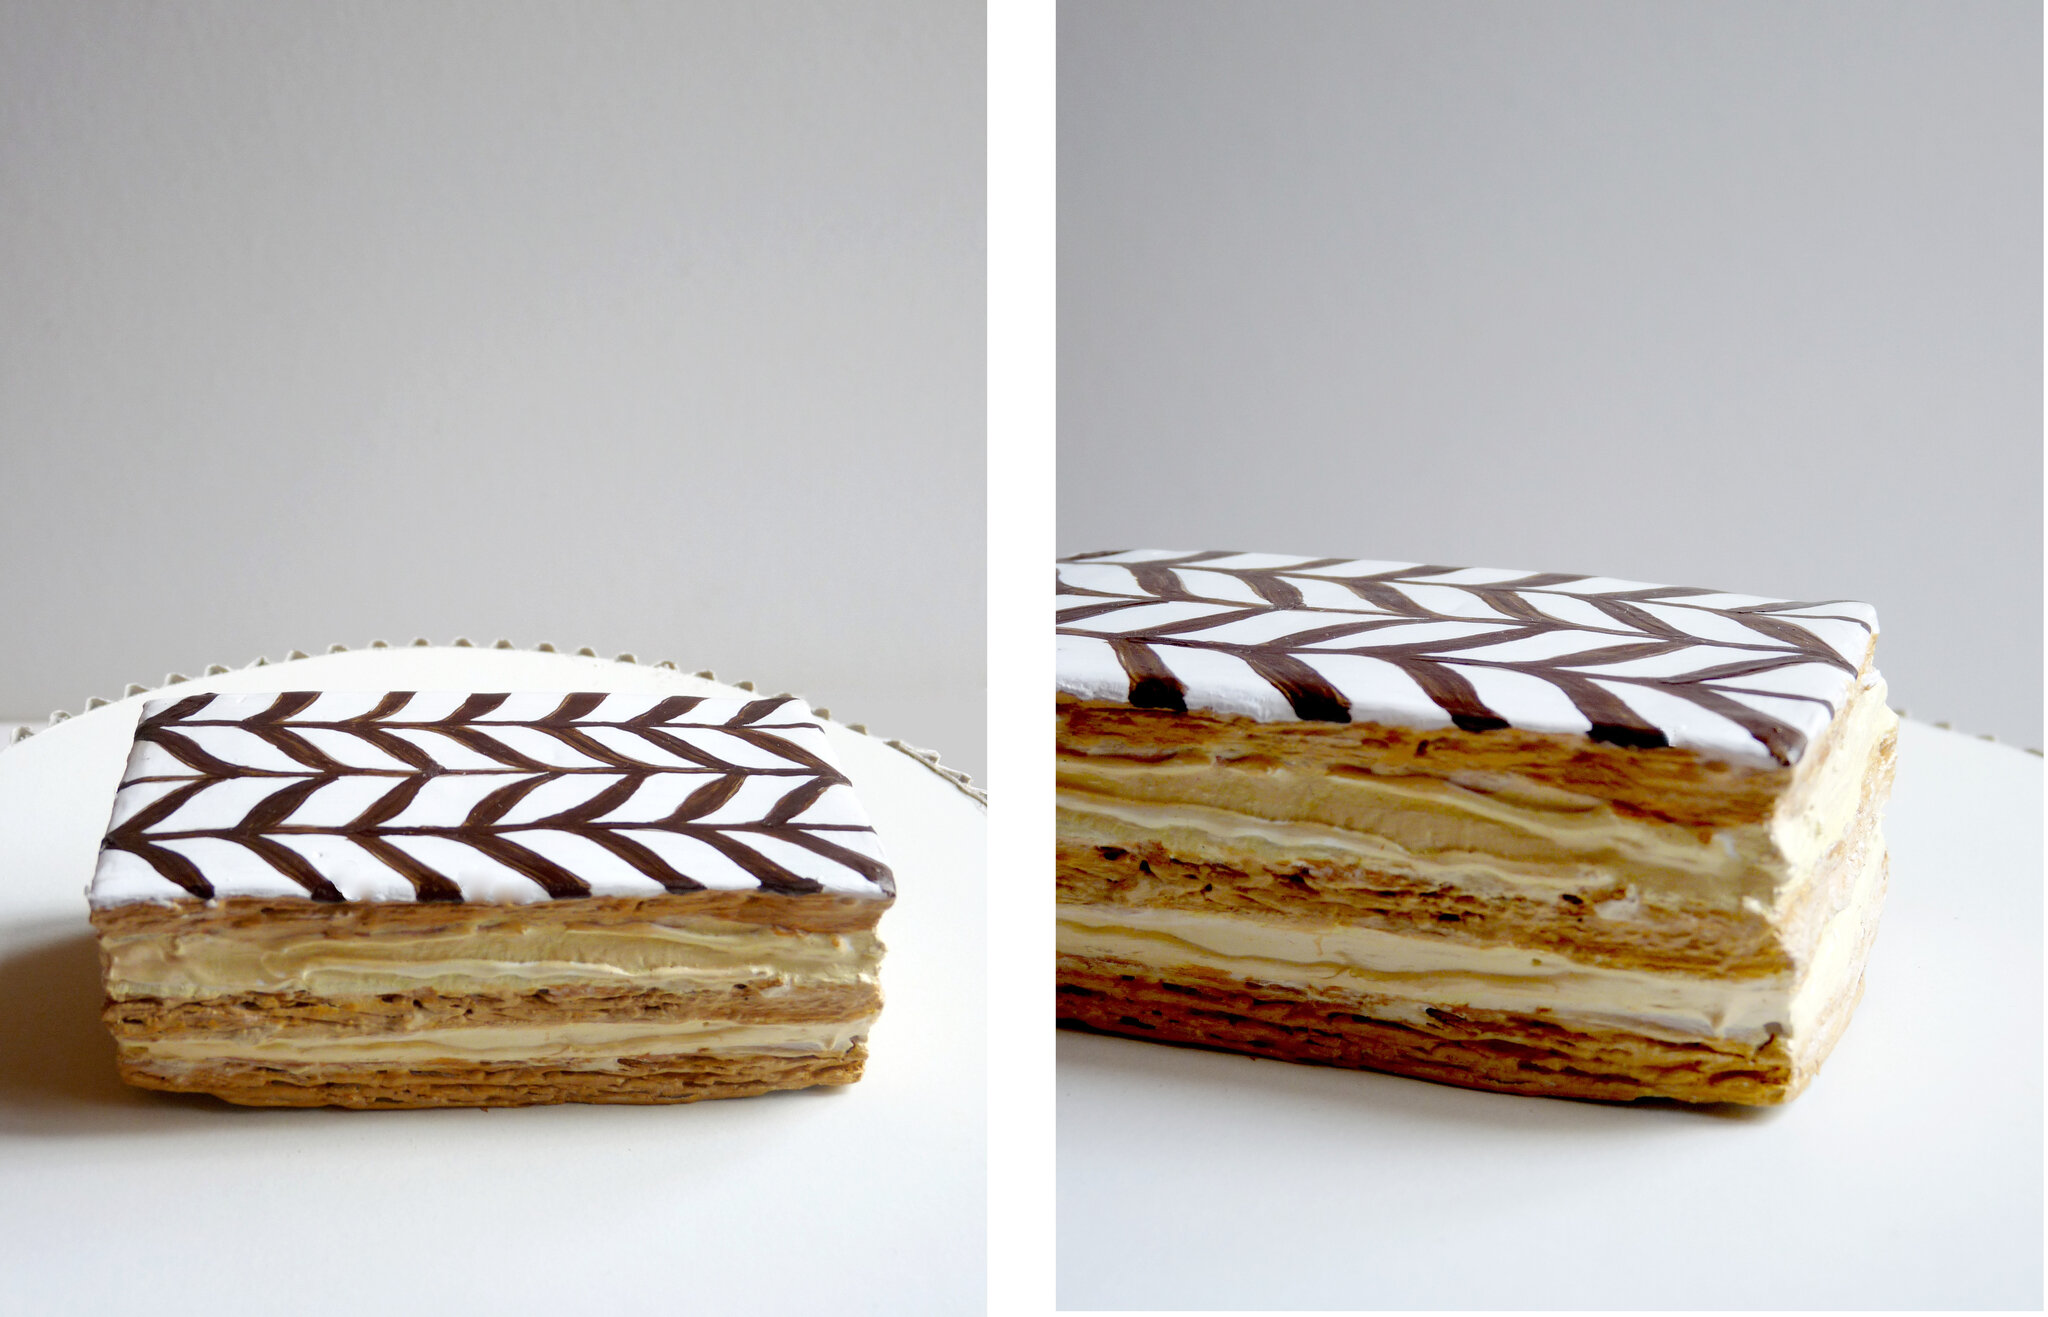 Mille feuilles,, vitrines Les Rêveries, Toulouse